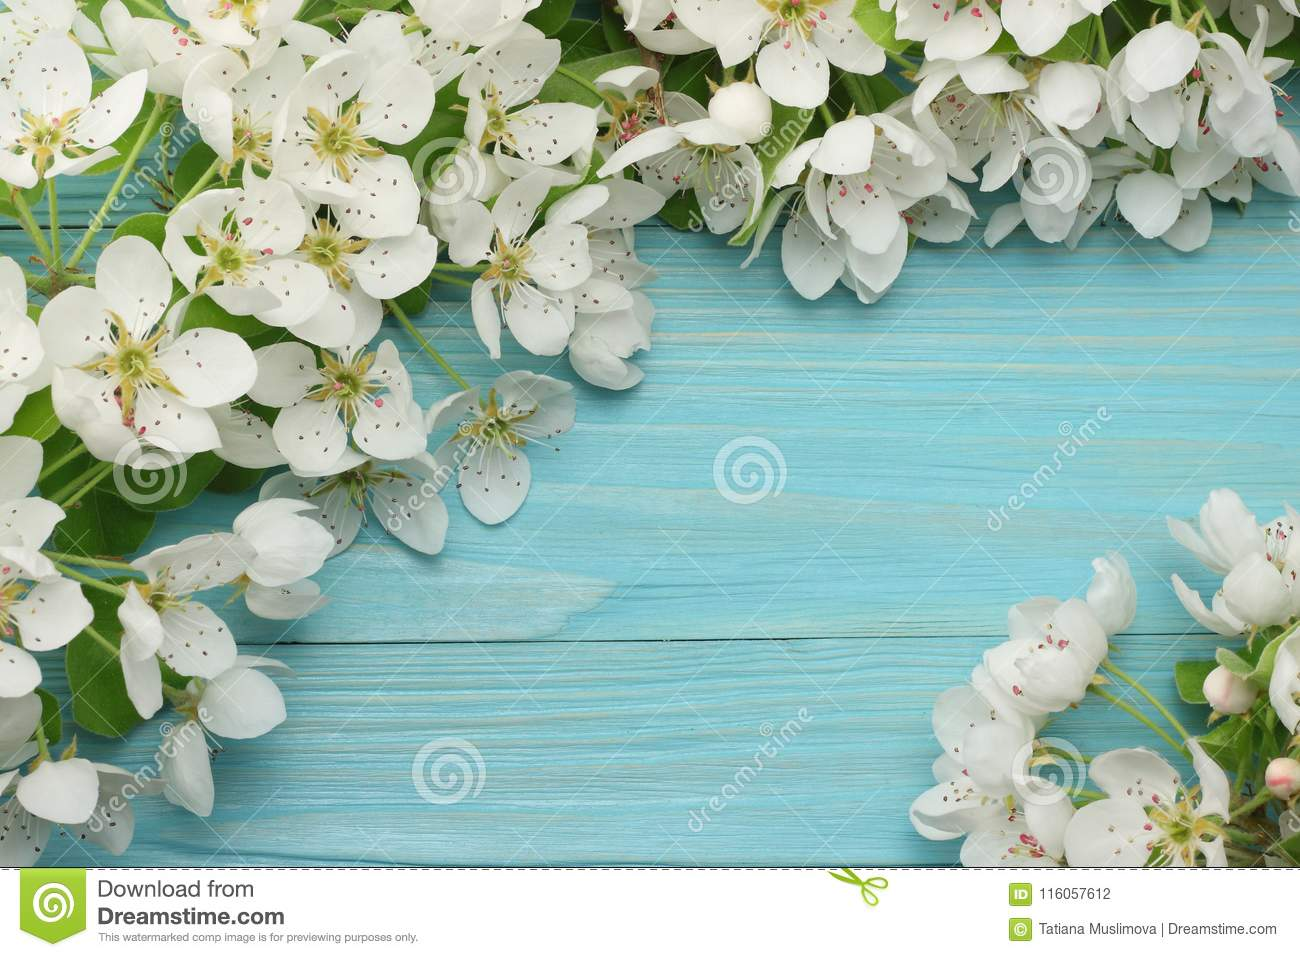 Spring background with white flowers blossoms on blue wooden background. top view